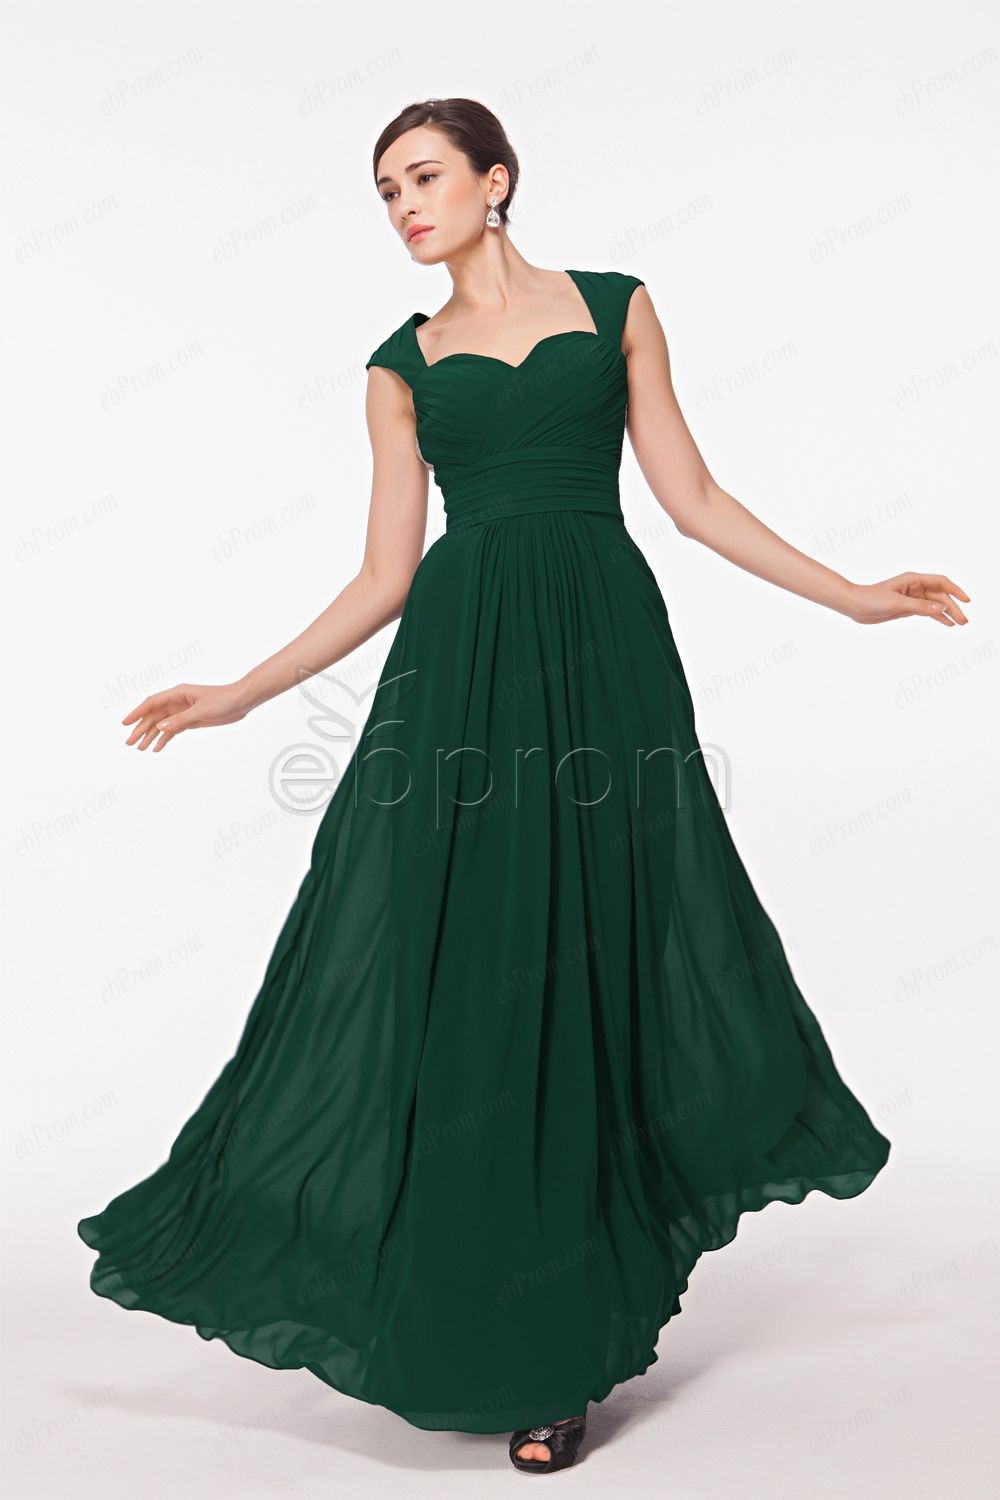 b2d2b75b947 Forest green backless prom dresses with sparkly sequin